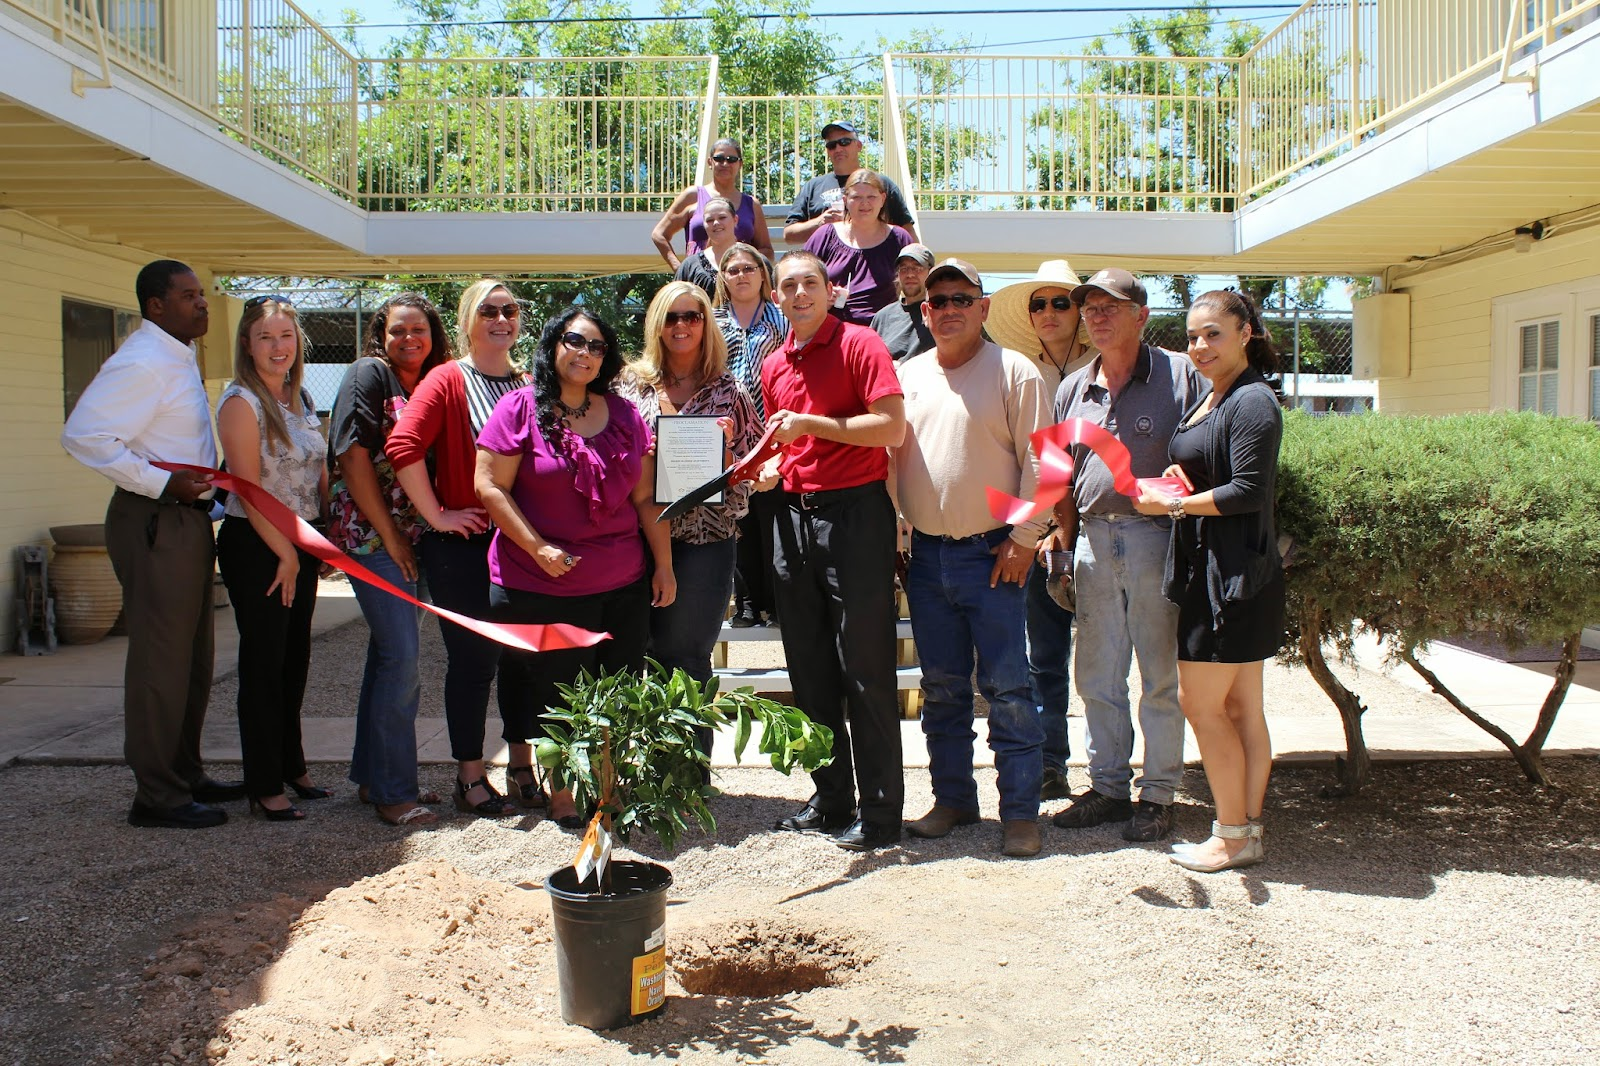 Grindstone Property Management and Orange Blossom Apartments are dedicated to helping Tucson residents find both affordable and comfortable housing, while also participating in activities benefiting the community.  We are planting this orange tree as a continued effort inour mission of going green and in celebration of the new management team.